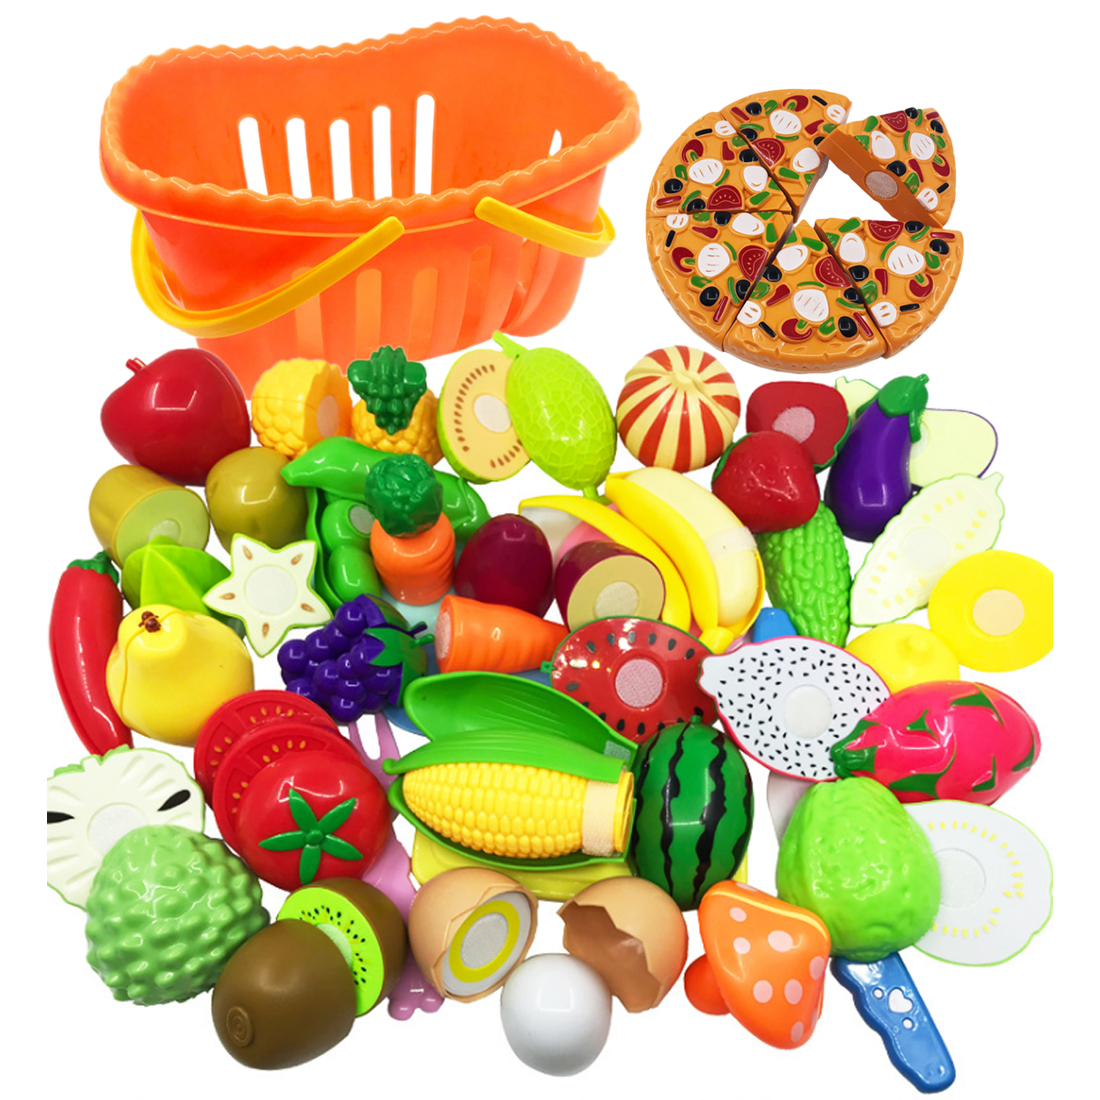 40Pcs Pretend & Play Early Educational Kitchen Toys Children Simulation Vegetables and Fruits Cutting Playing Set for Kid Gift40Pcs Pretend & Play Early Educational Kitchen Toys Children Simulation Vegetables and Fruits Cutting Playing Set for Kid Gift